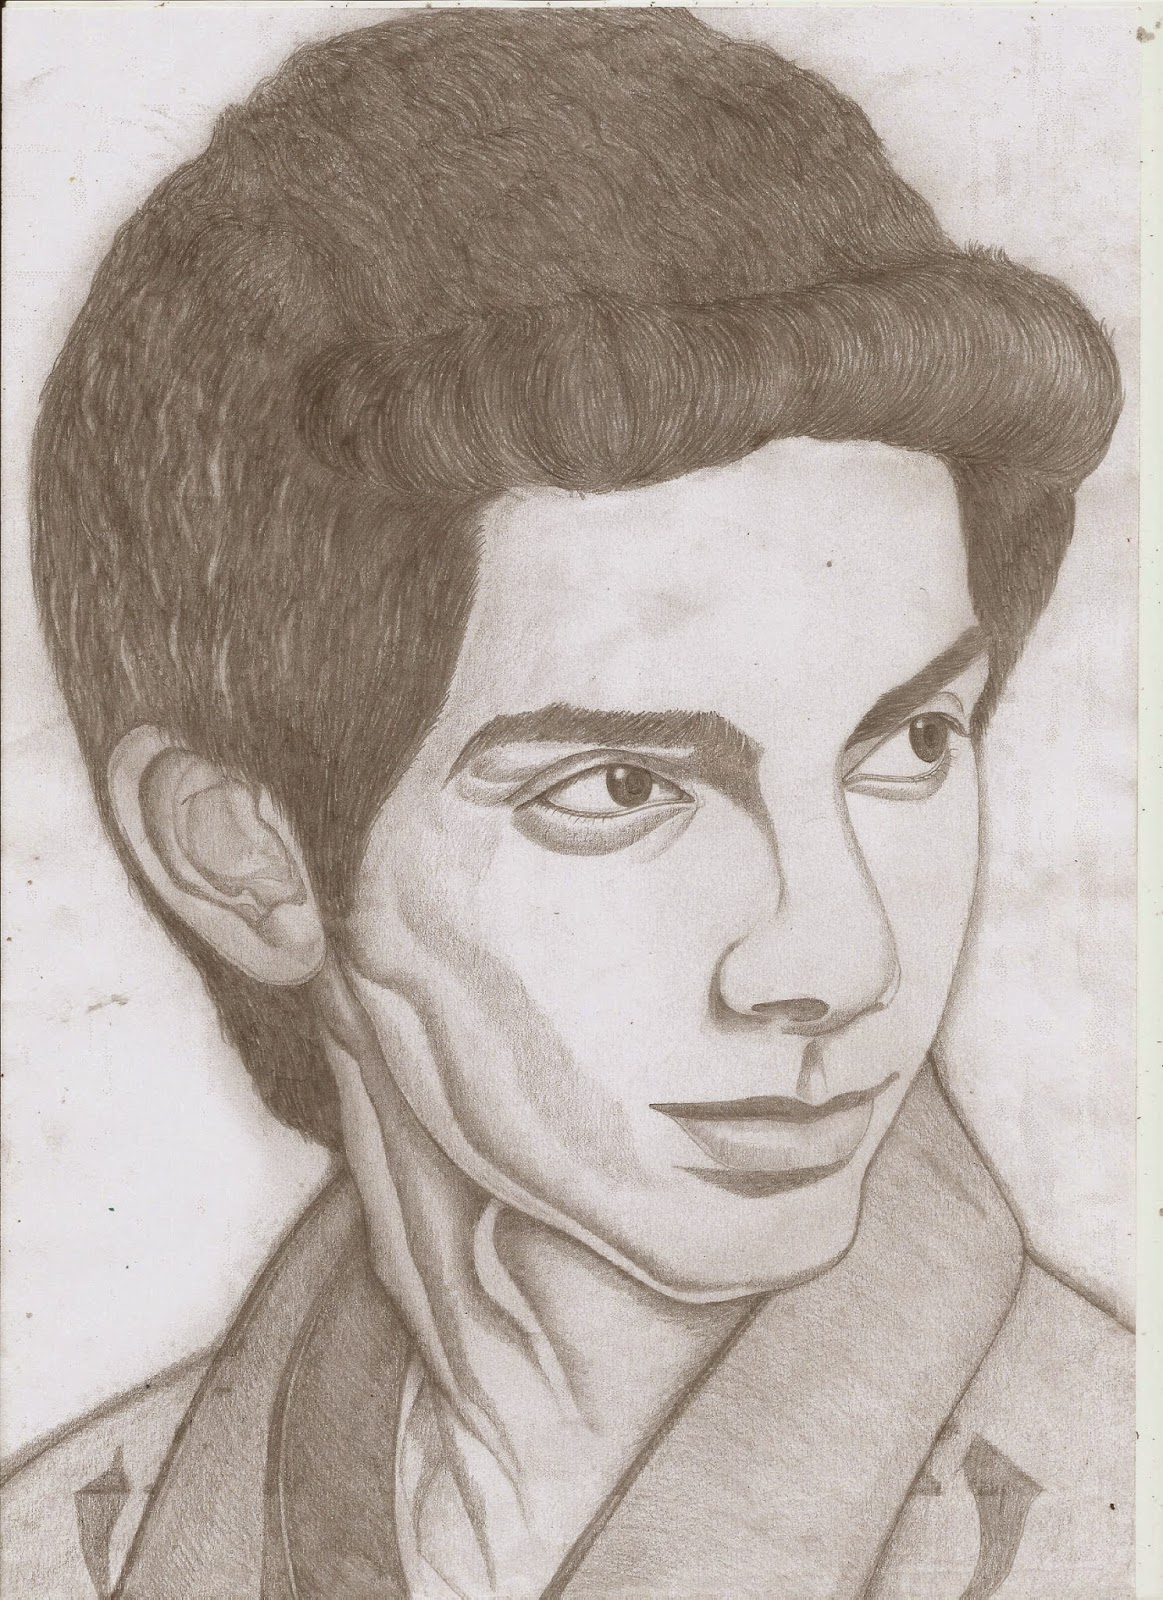 Jackhi pencil drawing anirudh pencil sketch jackhi pencil